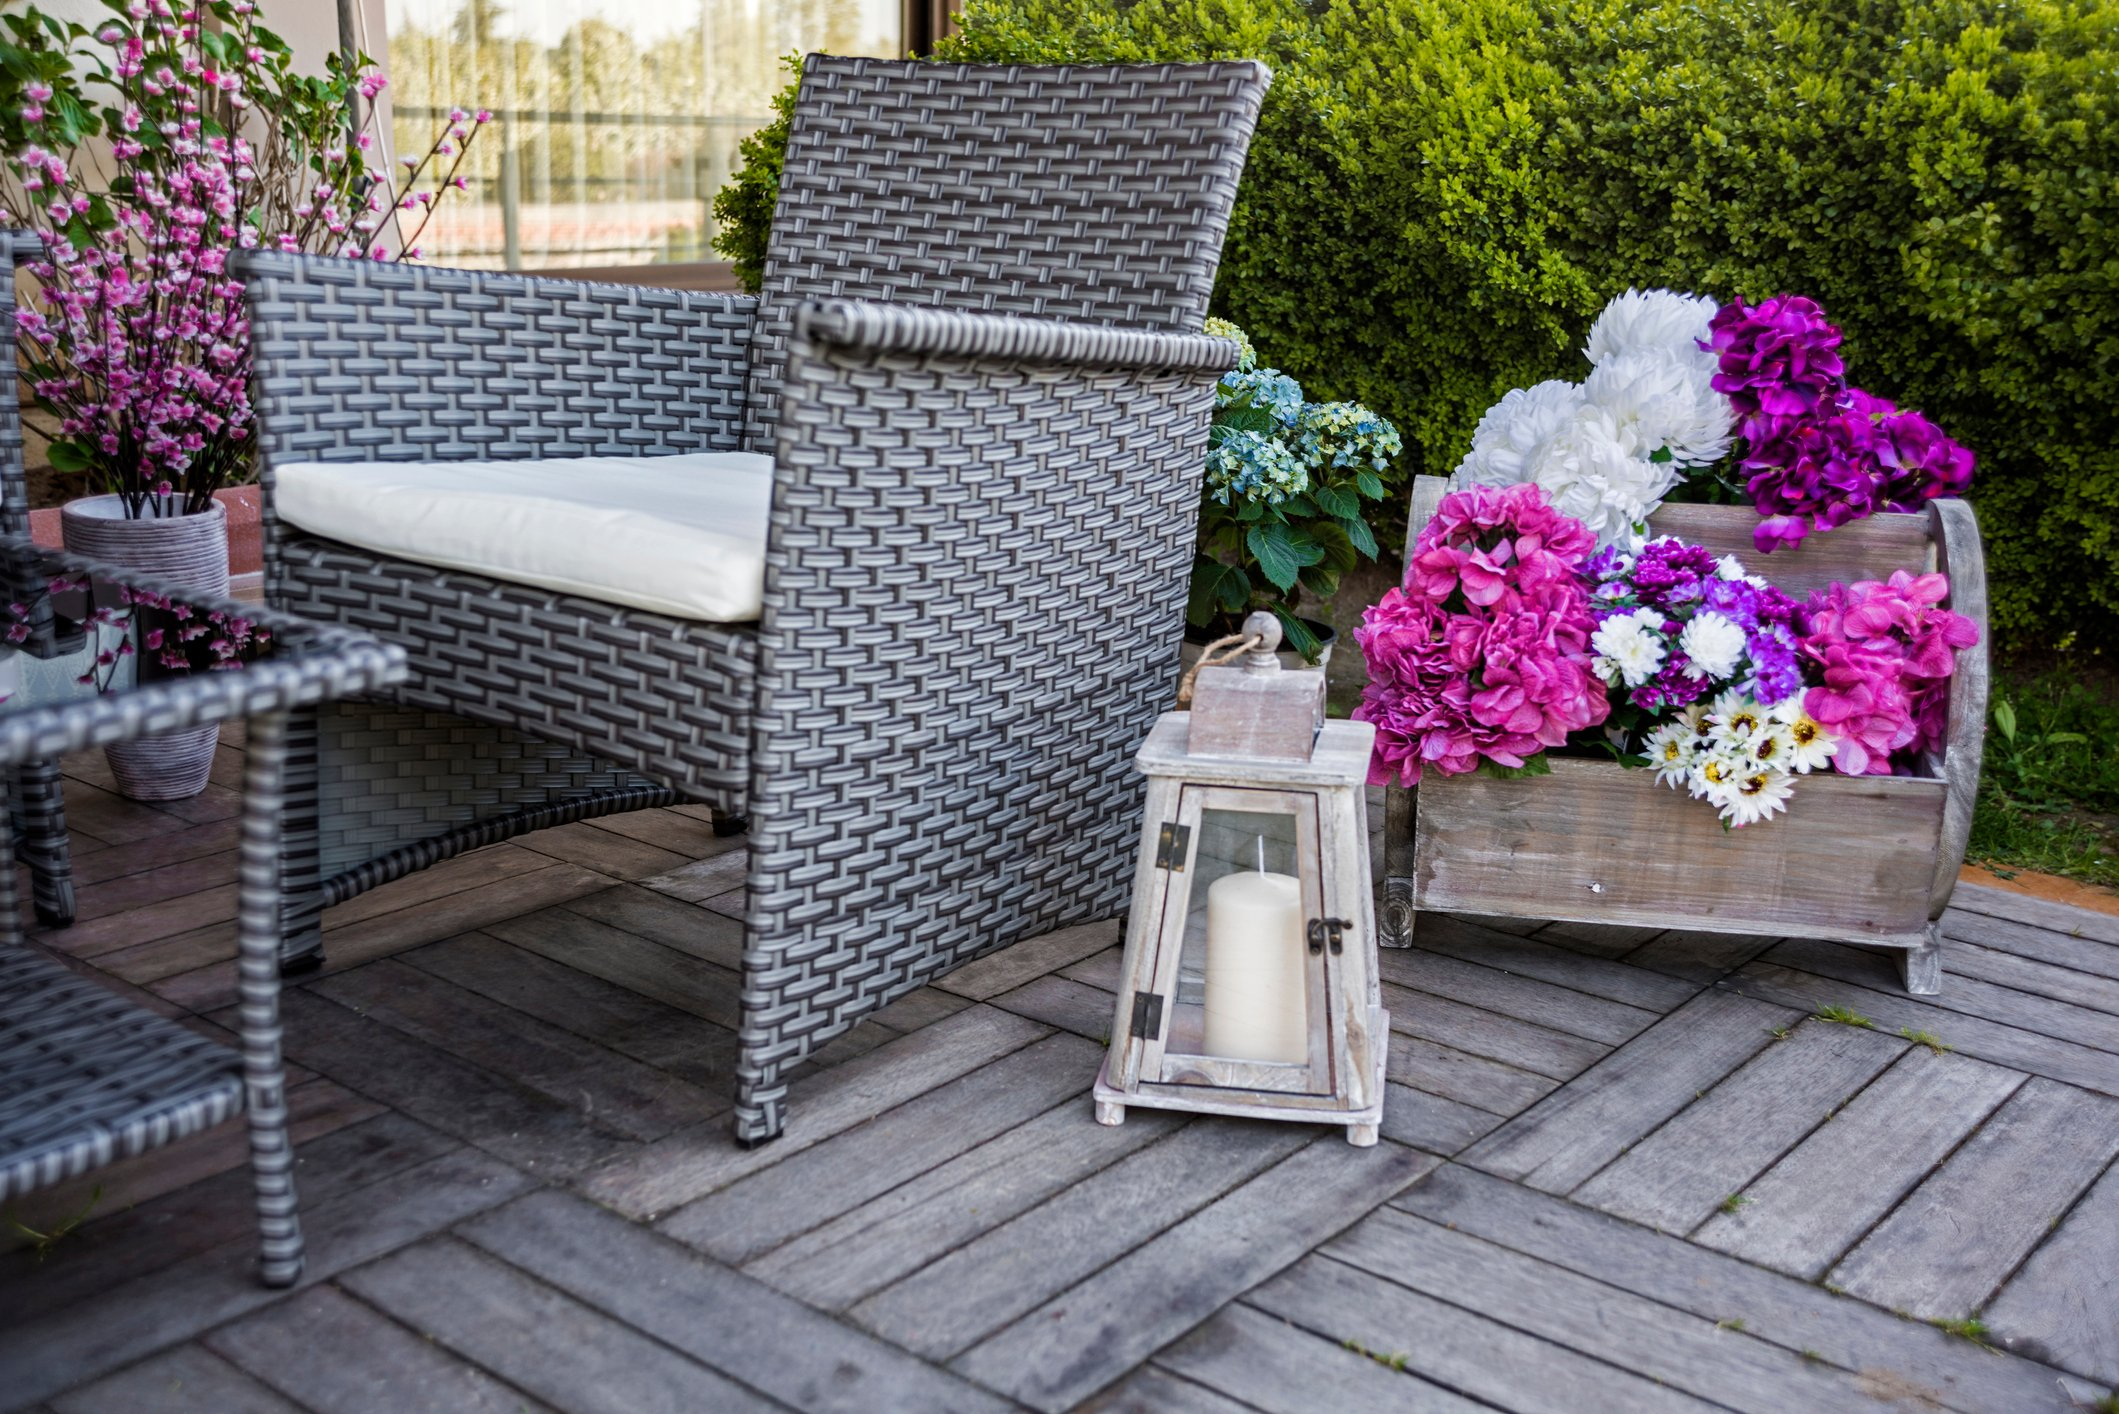 Wicker and rattan style furniture has seen a boom in popularity. (iStock Photo)